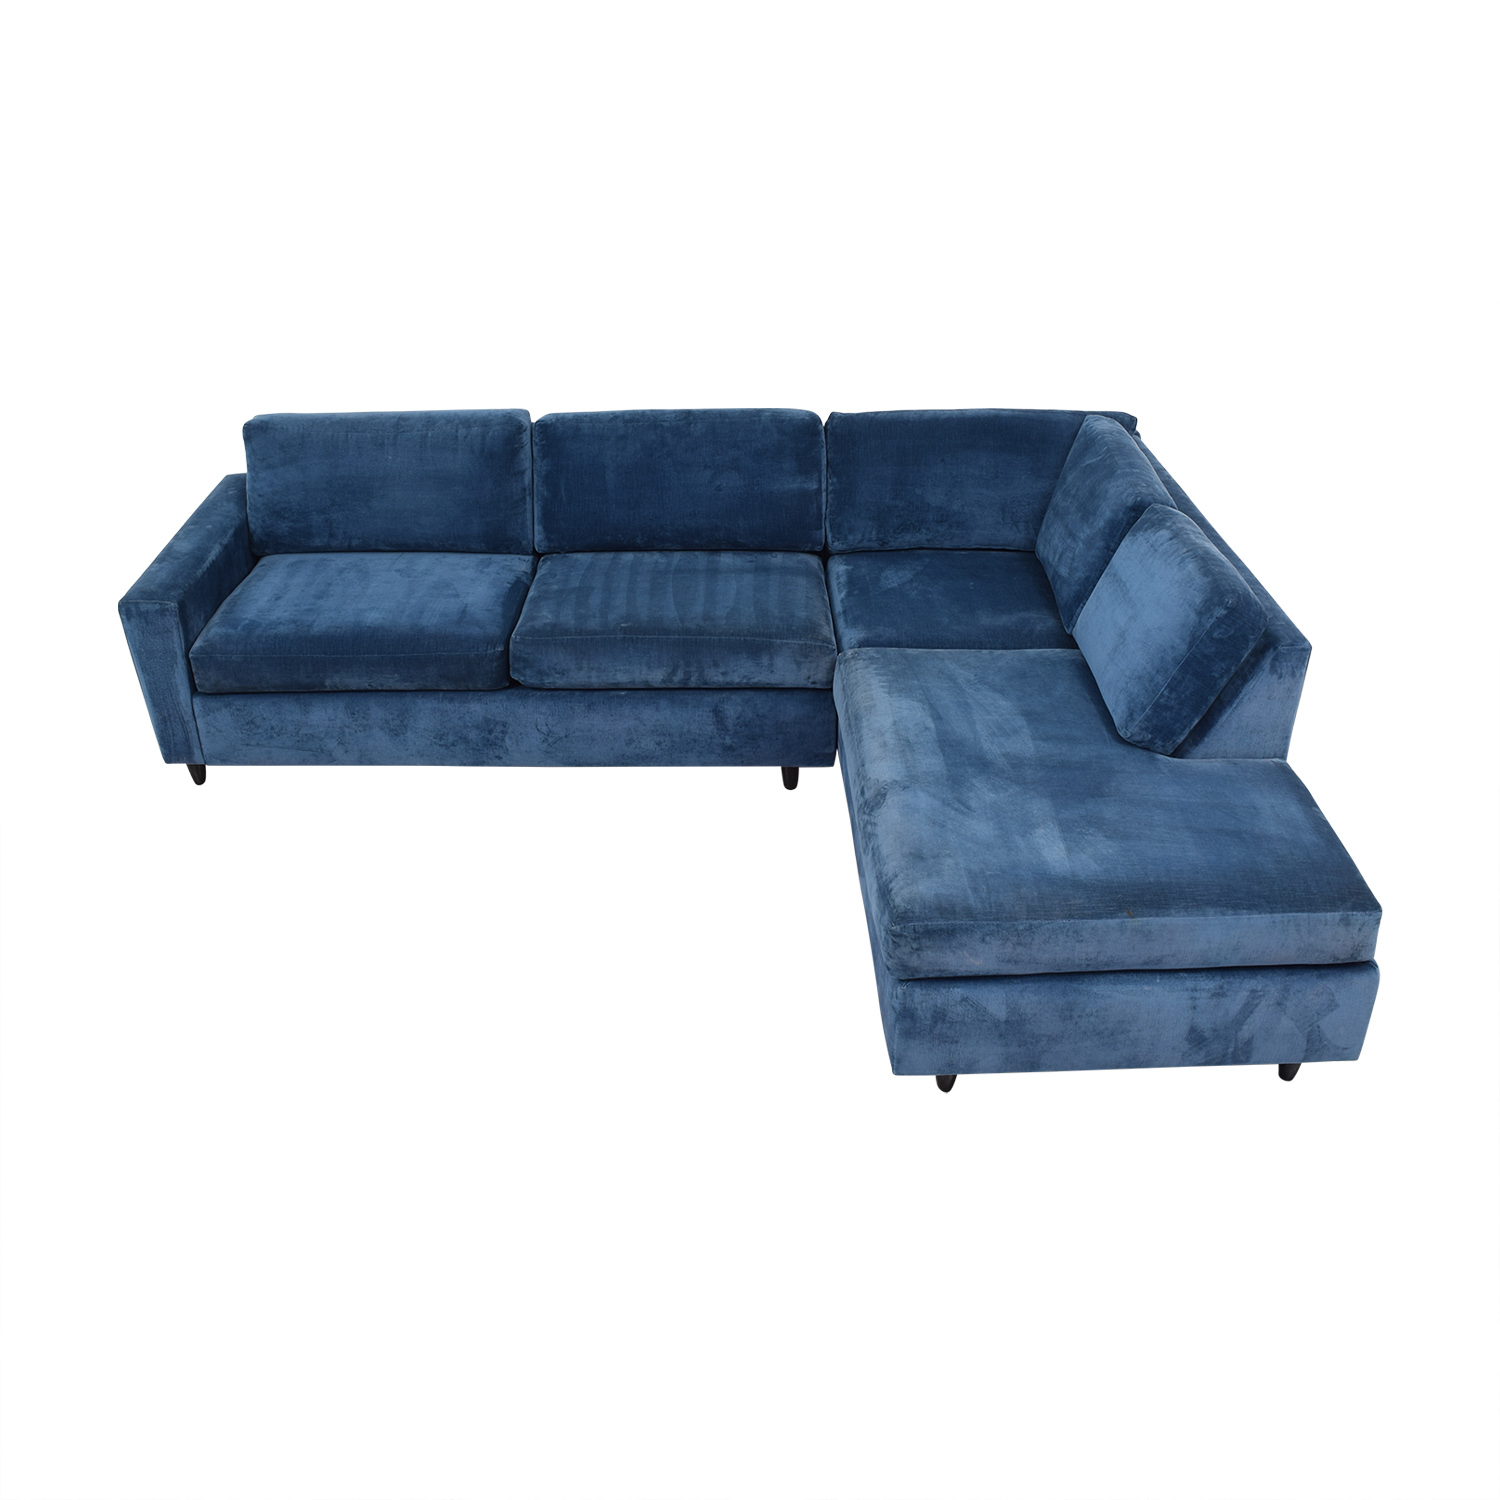 Jensen-Lewis Sectional Sofa sale